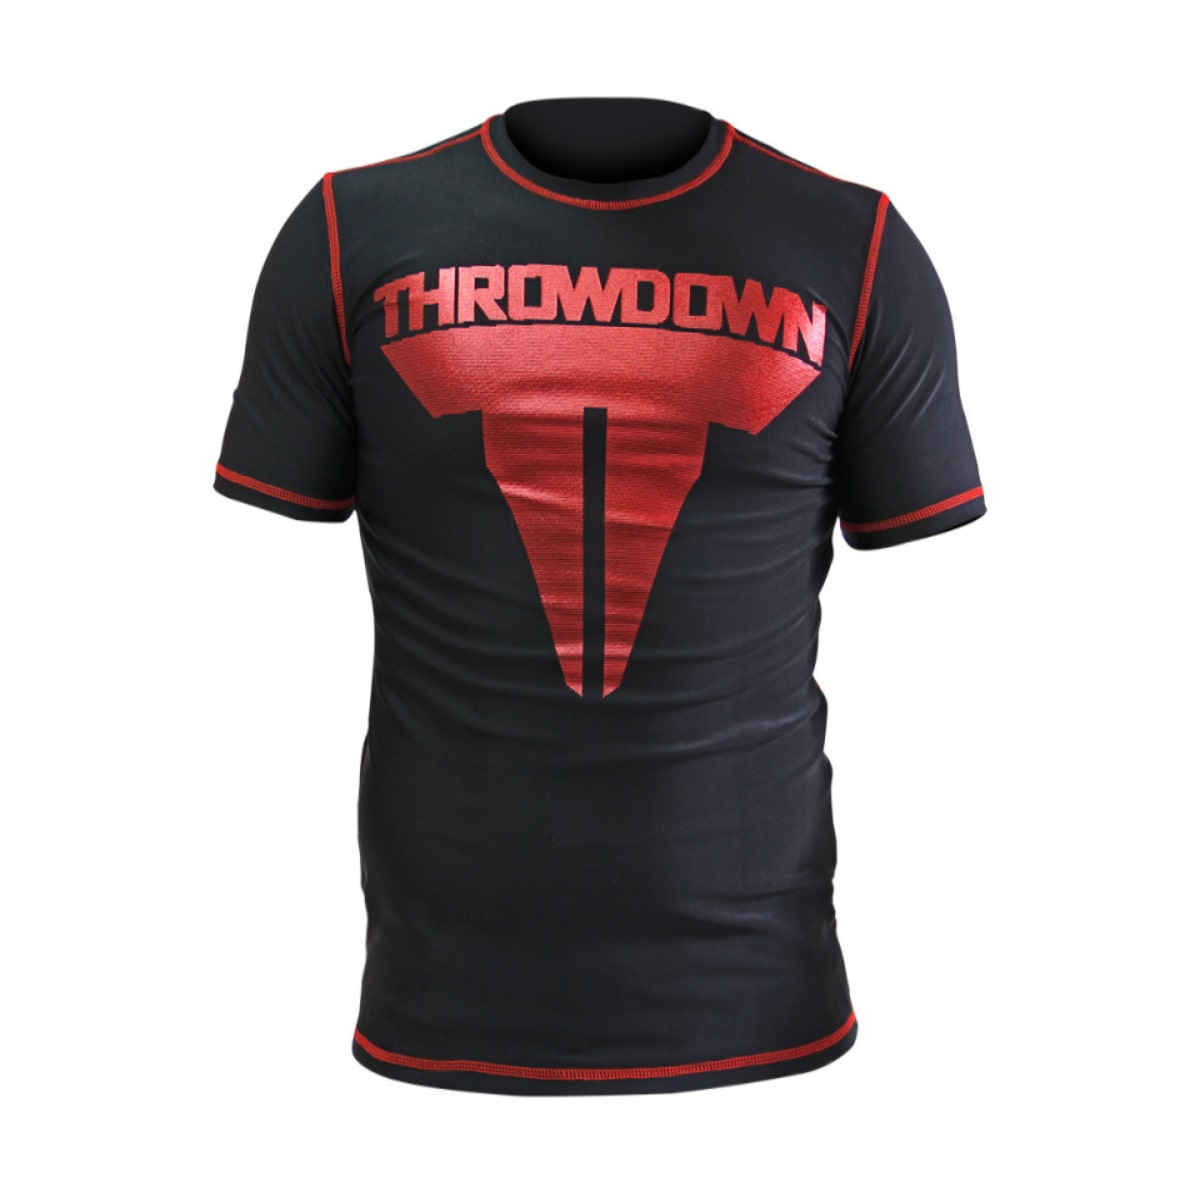 Rash Guard Throwdown Smash - Preto e Vermelho